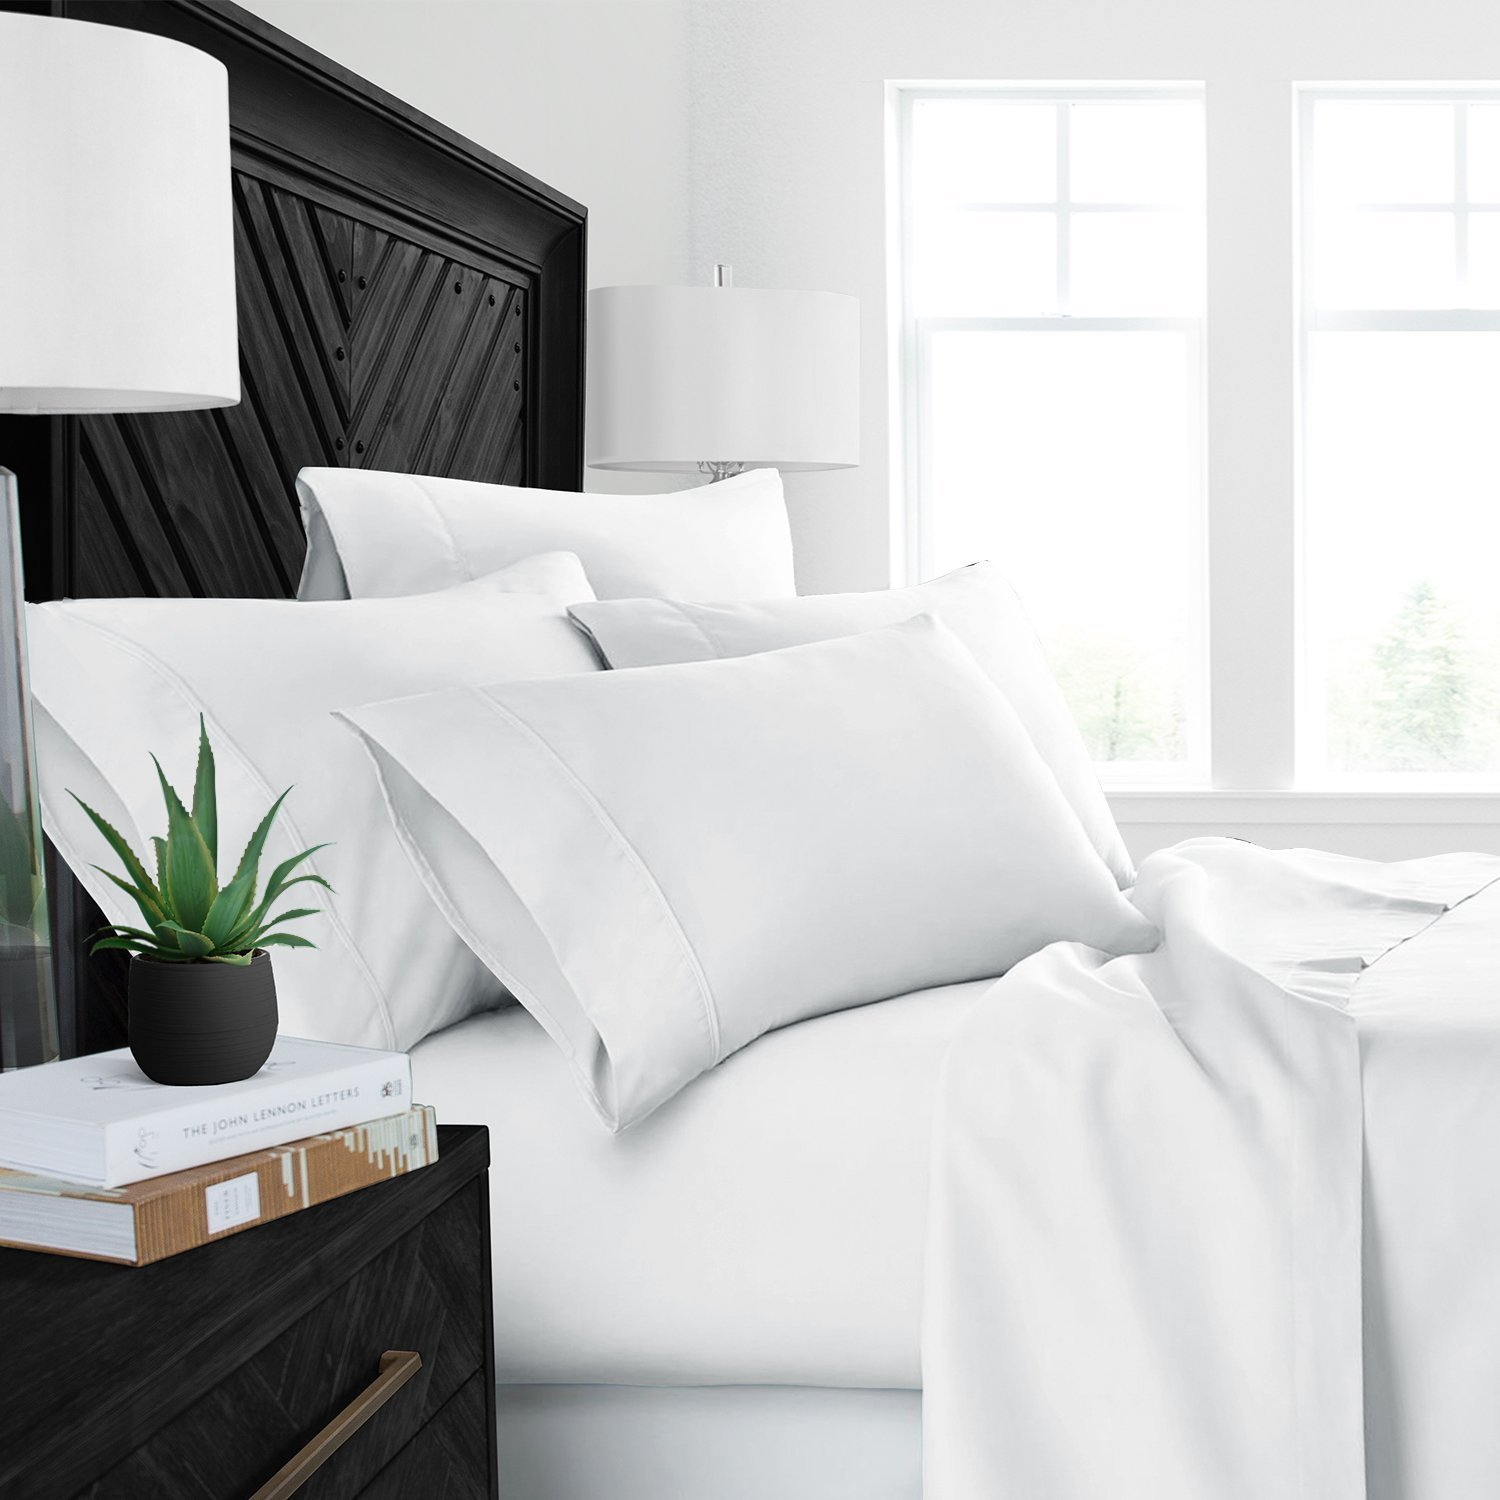 1000 Thread Count Luxury Soft 100% Cotton Sateen Bedding King Top Sheet, Cool and Hypoallergenic (King, White) by Thread Spread (Image #3)